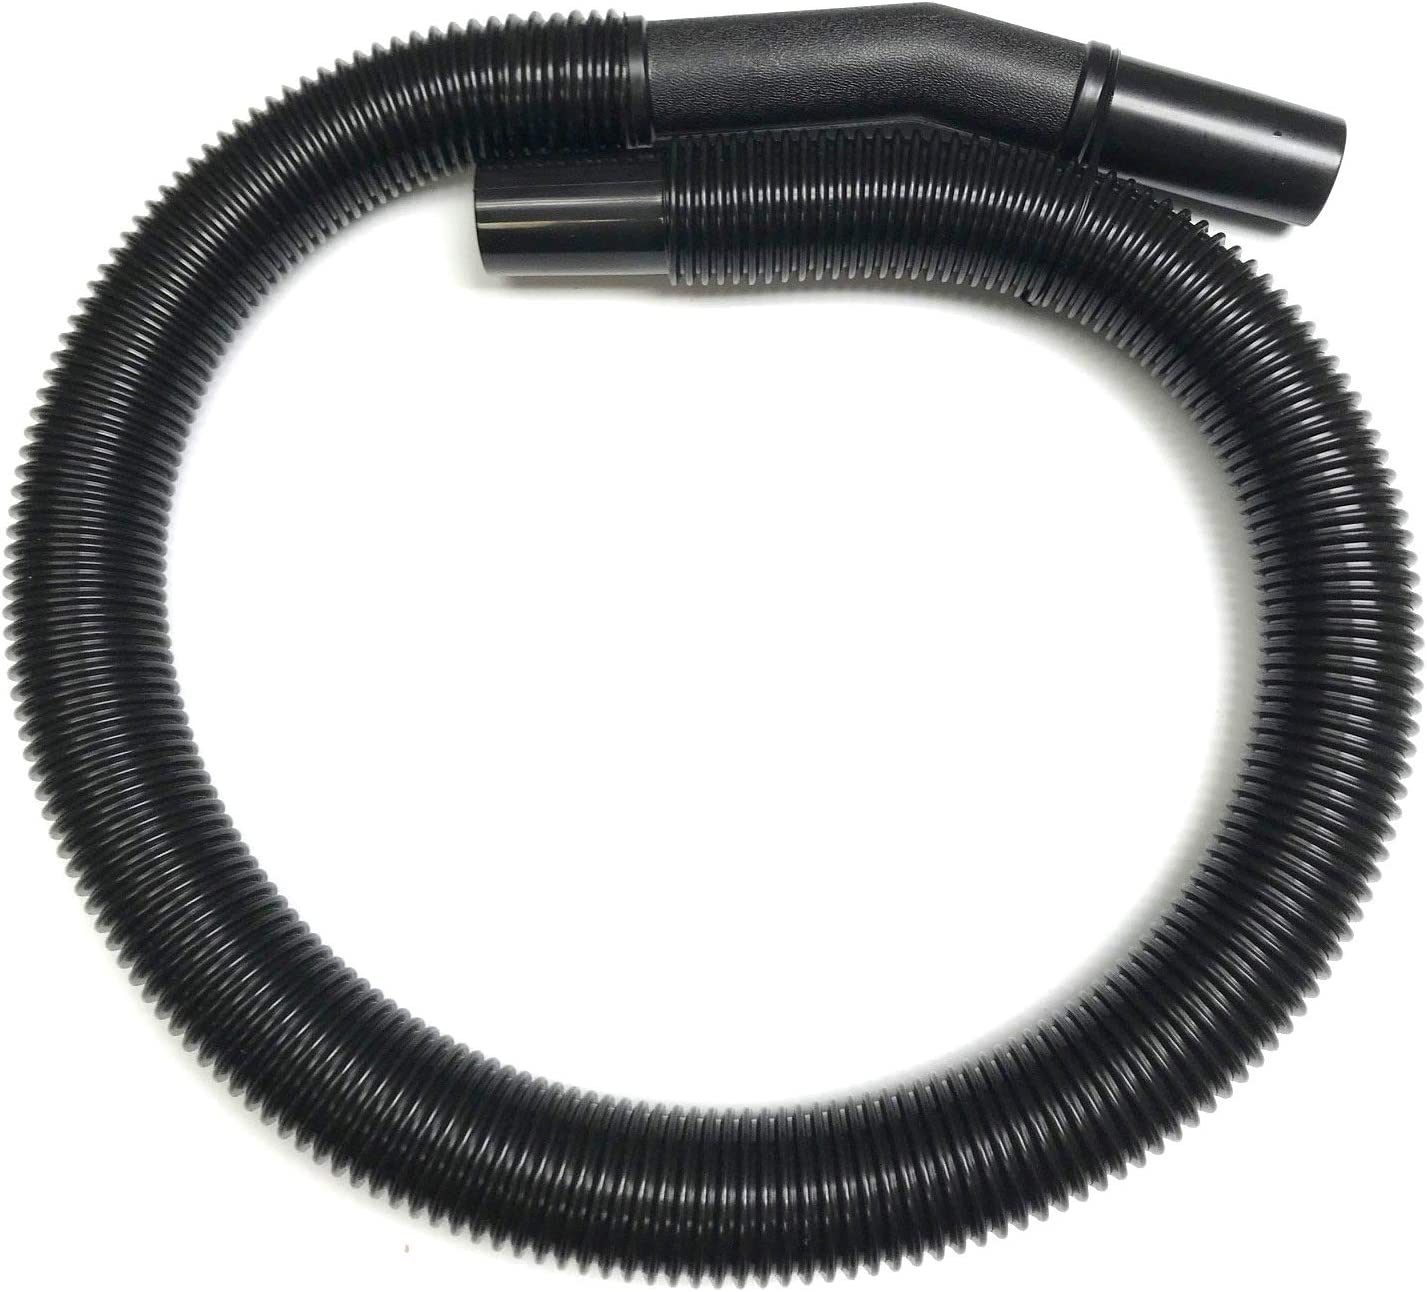 4 Feet Long Maresh Products Hose Compatible with and Replacement for Oreck Buster B Compact Handheld Vacuum Cleaner Using Friction Fit